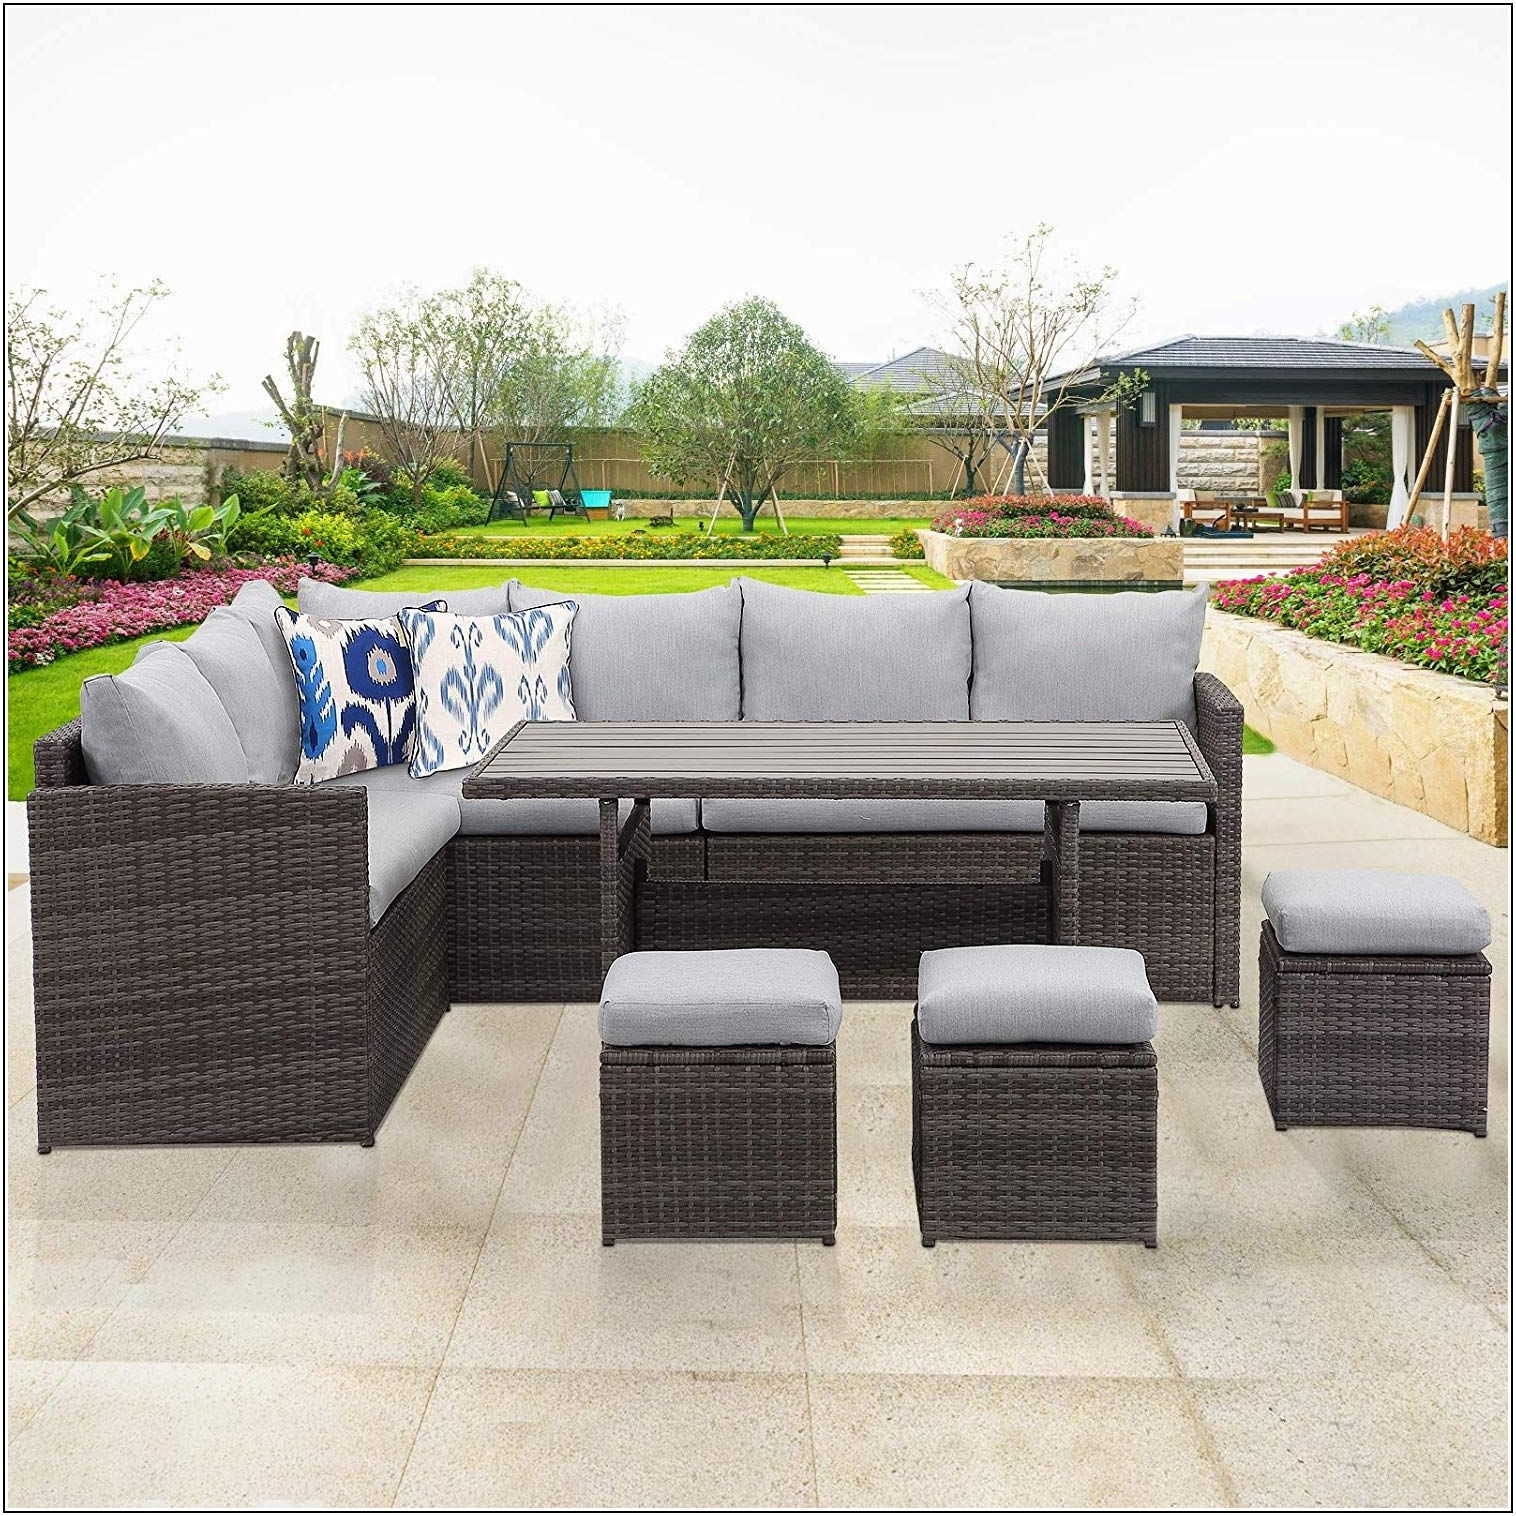 Wisteria Lane Patio Furniture Cushions